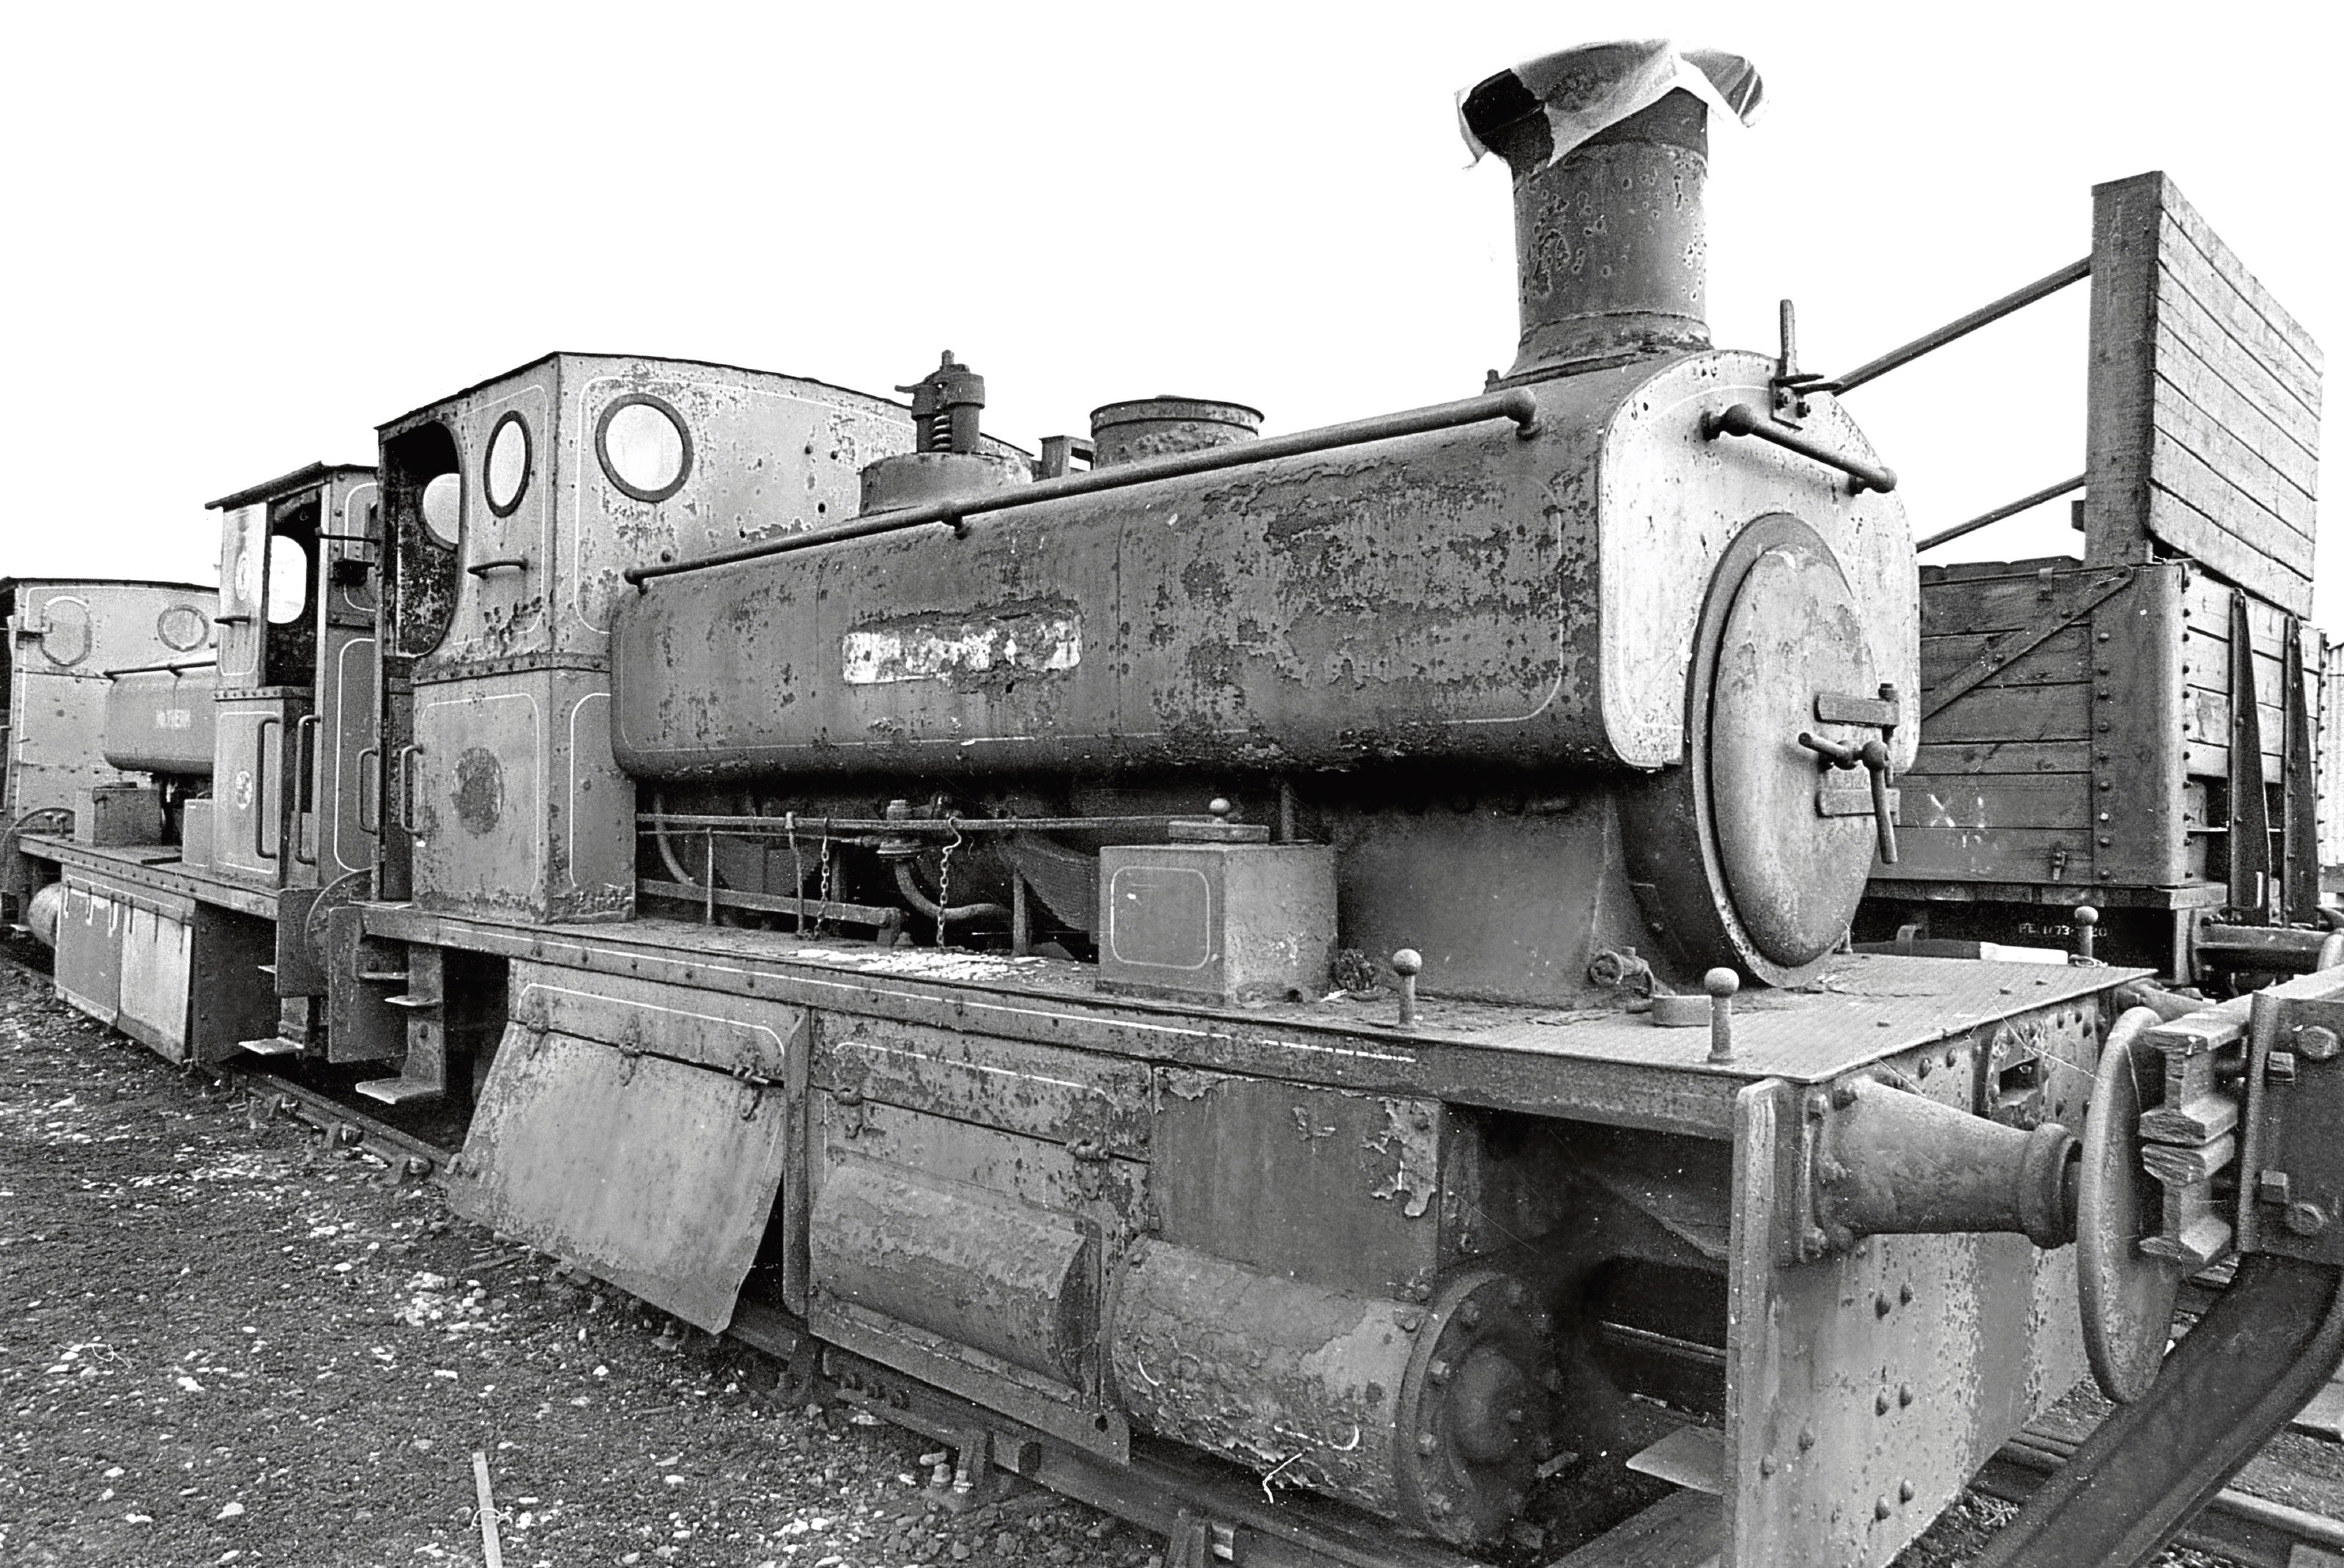 Number Three, one of the vintage shunters which Aberdeen engine lovers planned to restore.